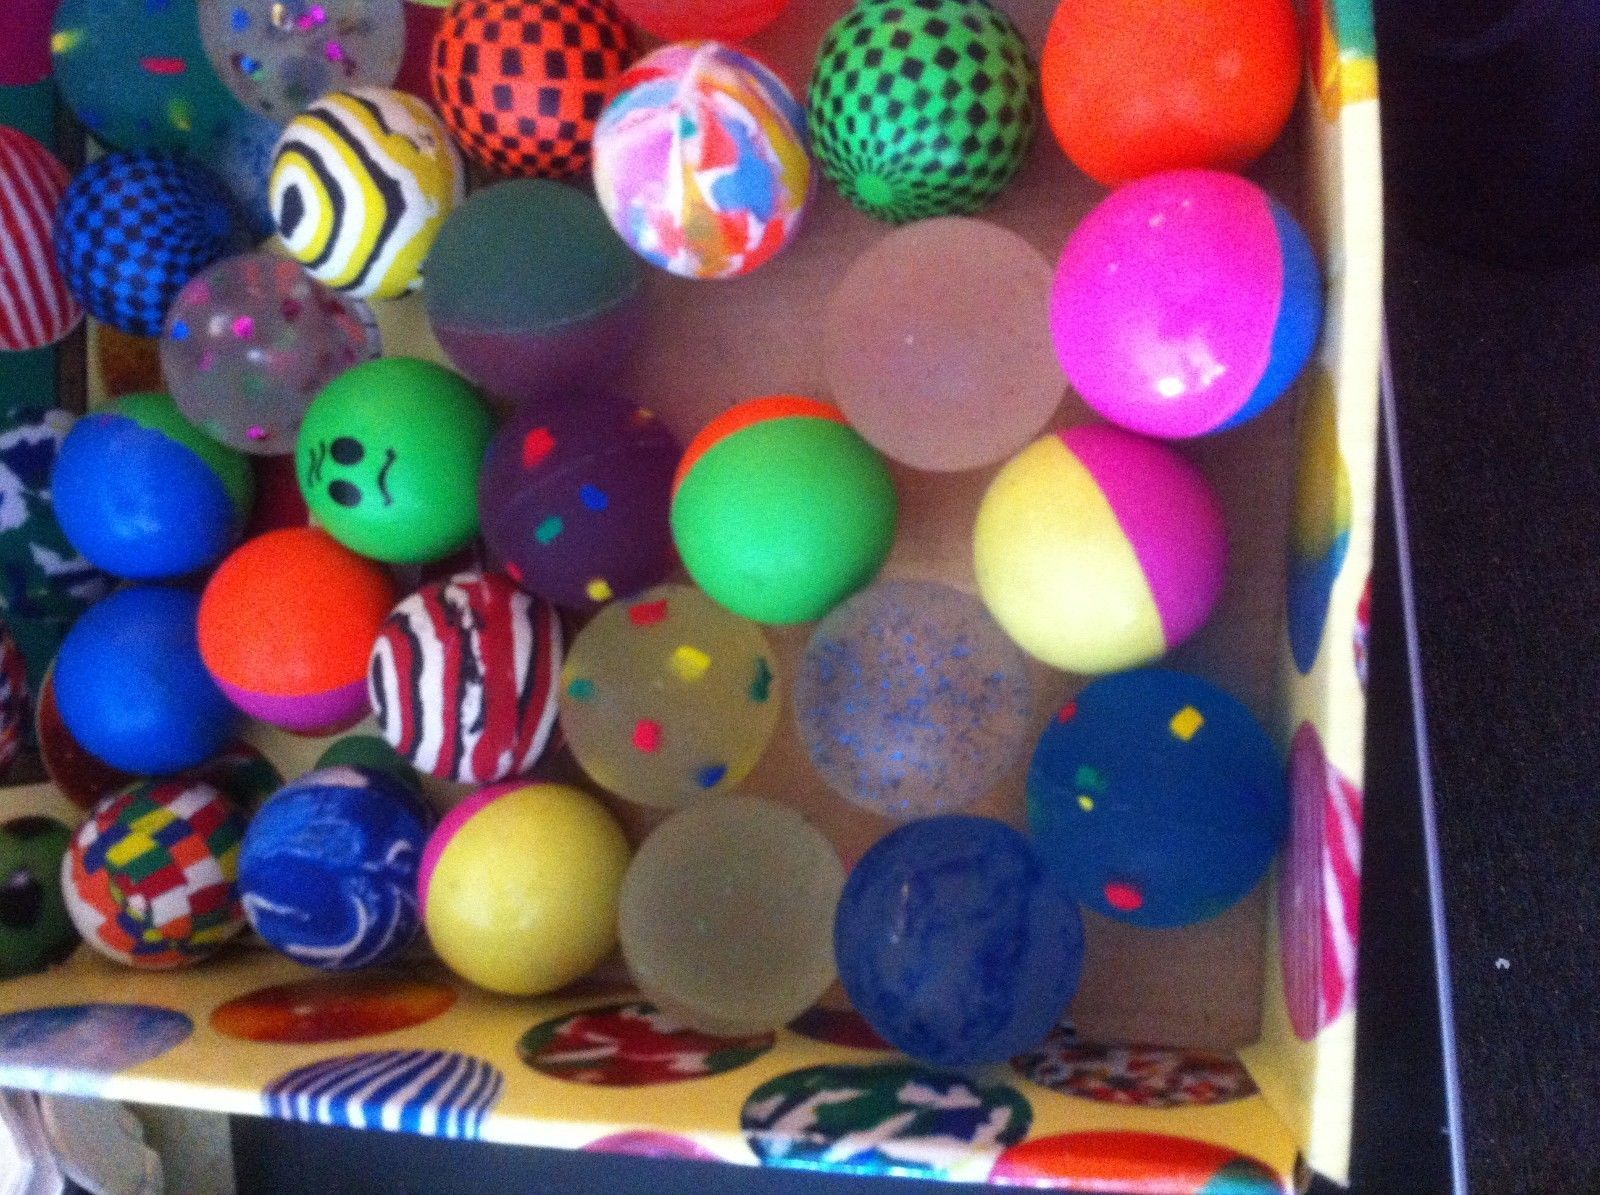 Bouncy ball super bouncing ball color choice great fun blast from the past